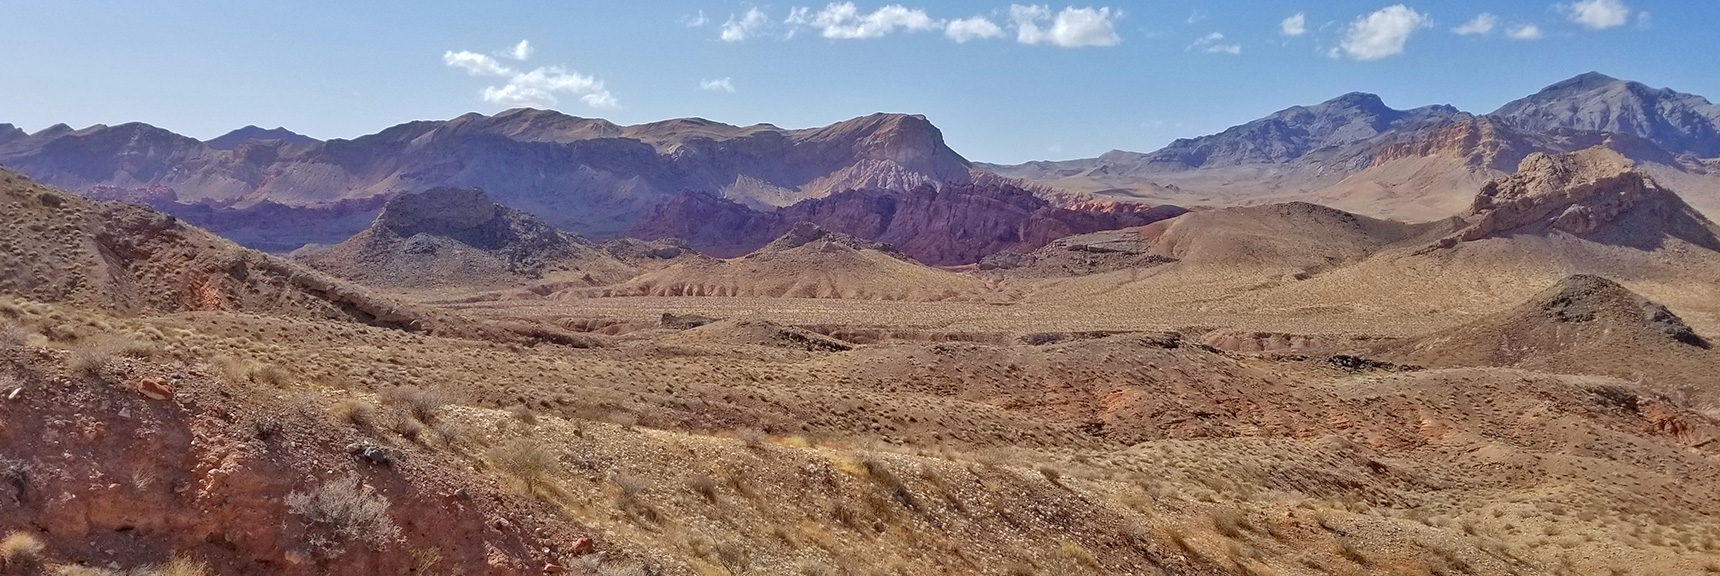 Return Route to Northshore Summit in the Distance   Northern Bowl of Fire   Lake Mead National Recreation Area, Nevada